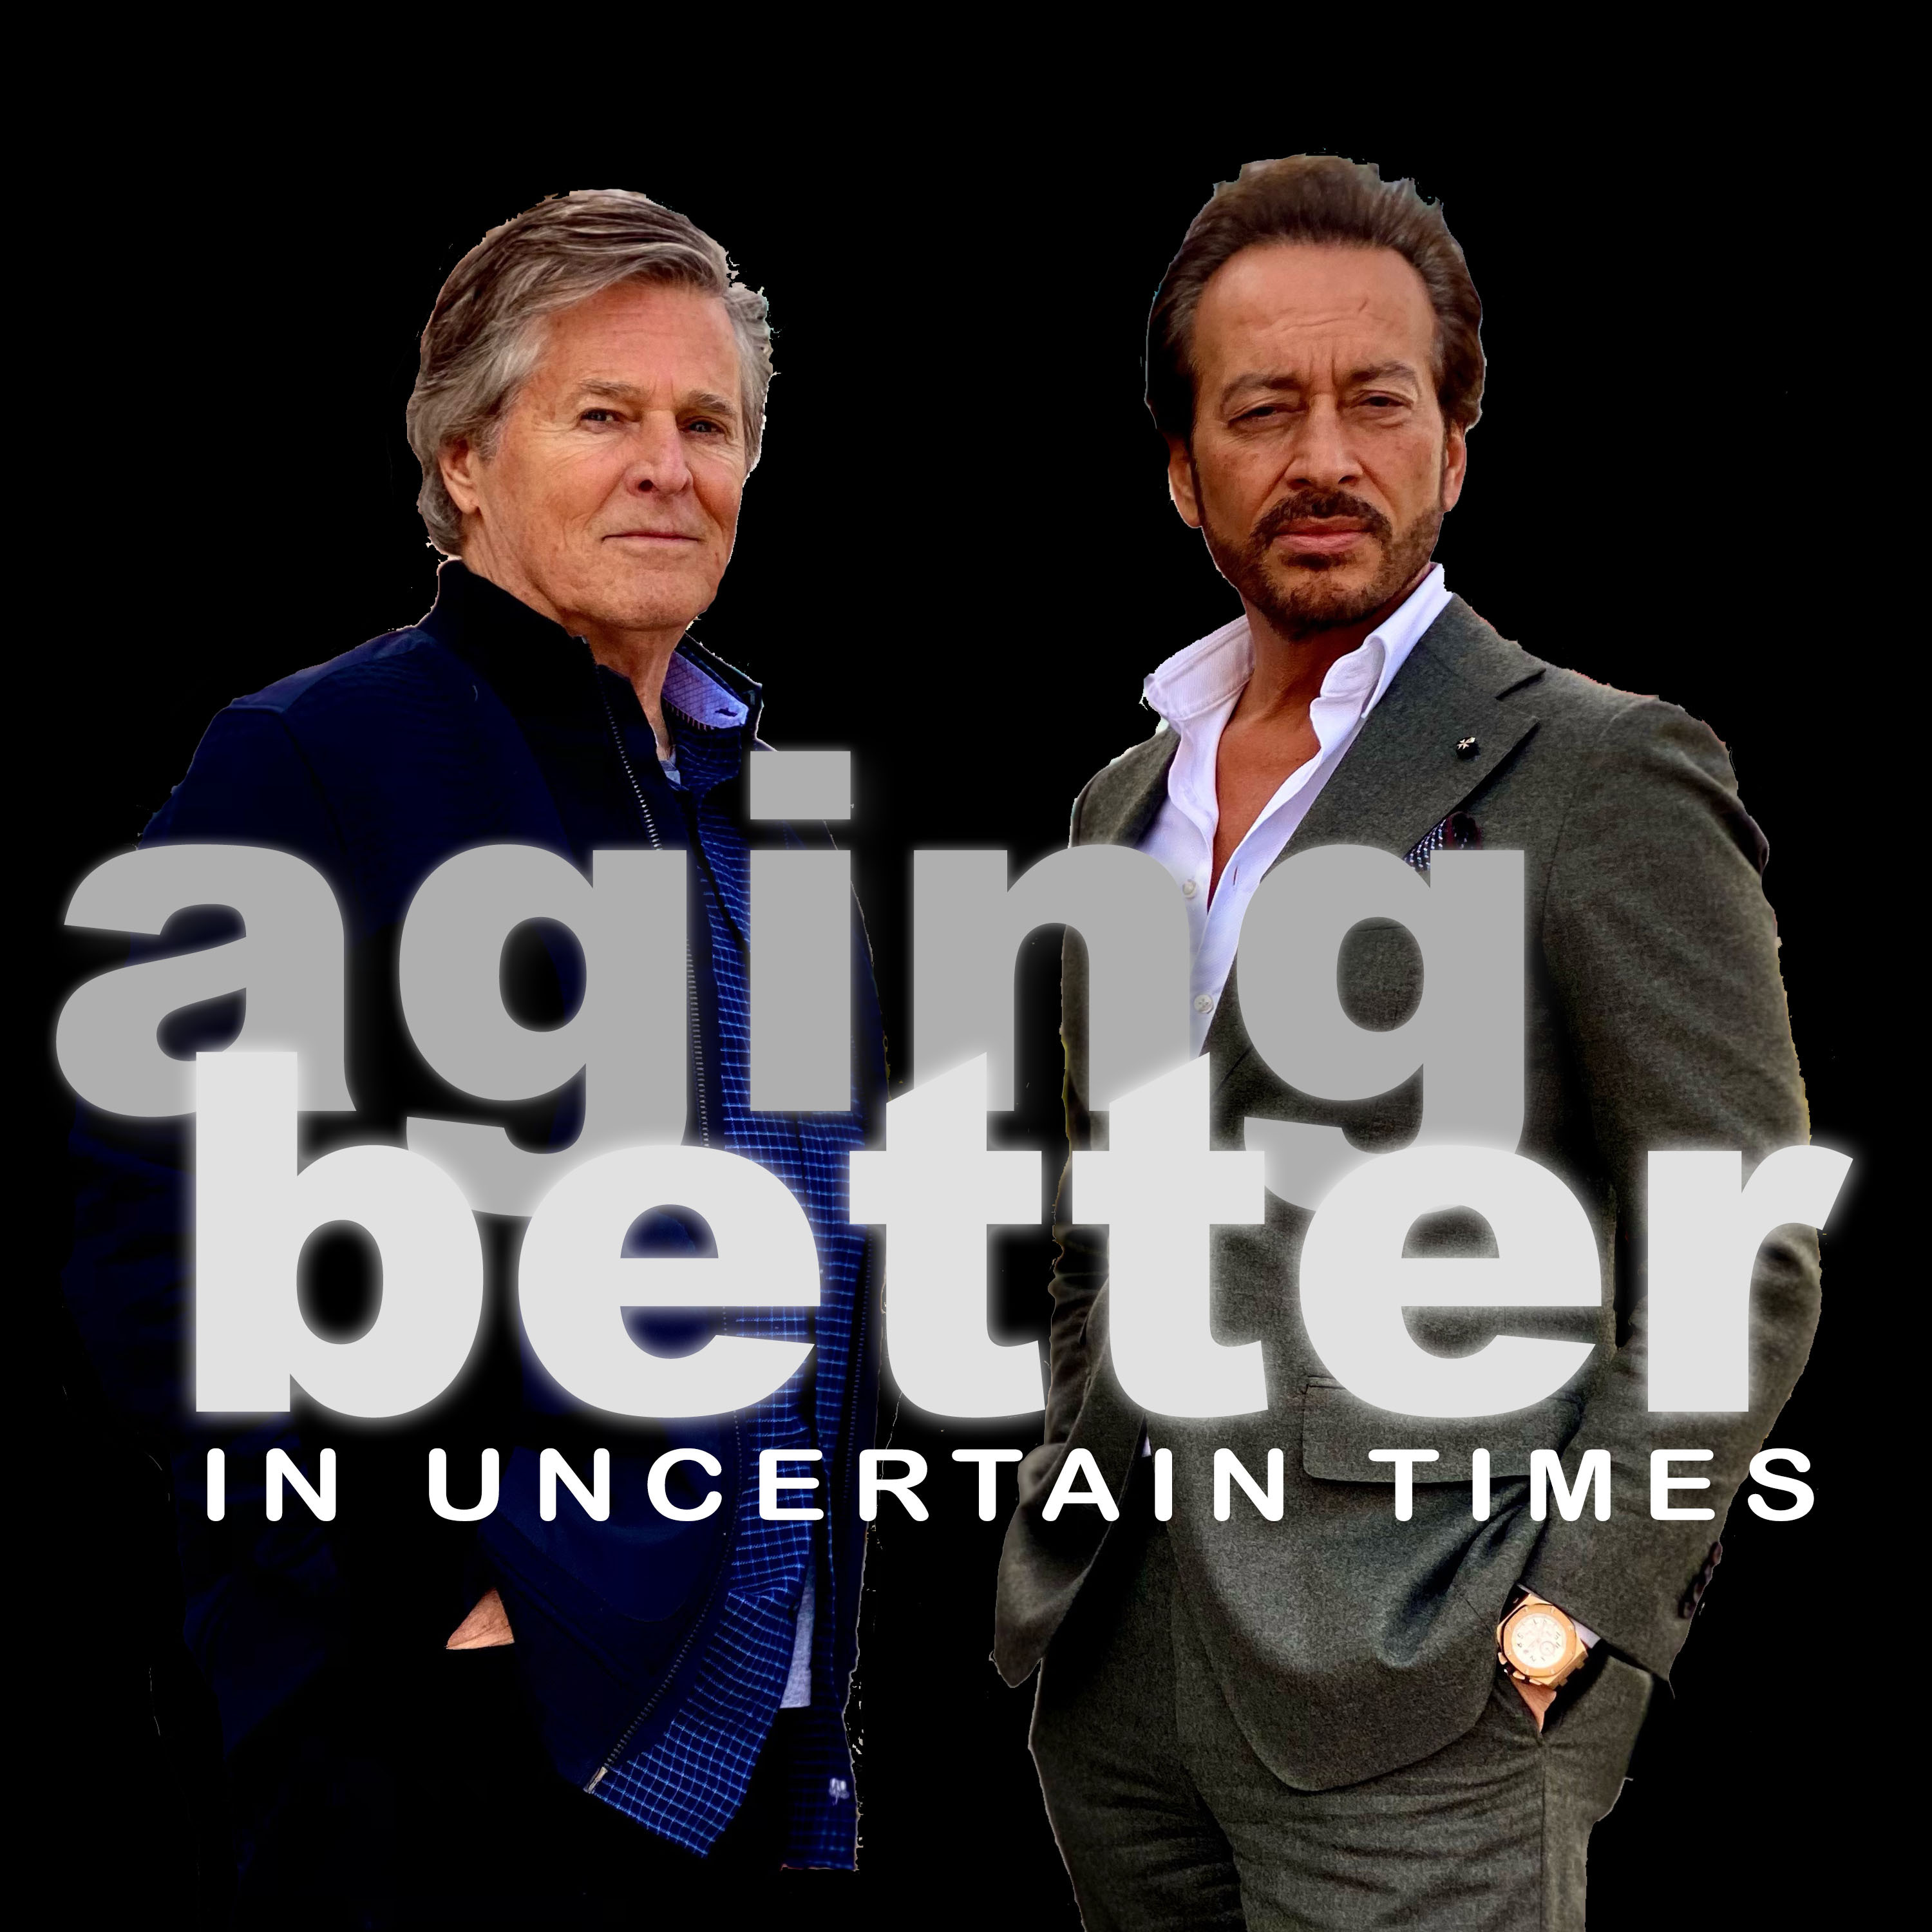 Aging Better in Uncertain Times